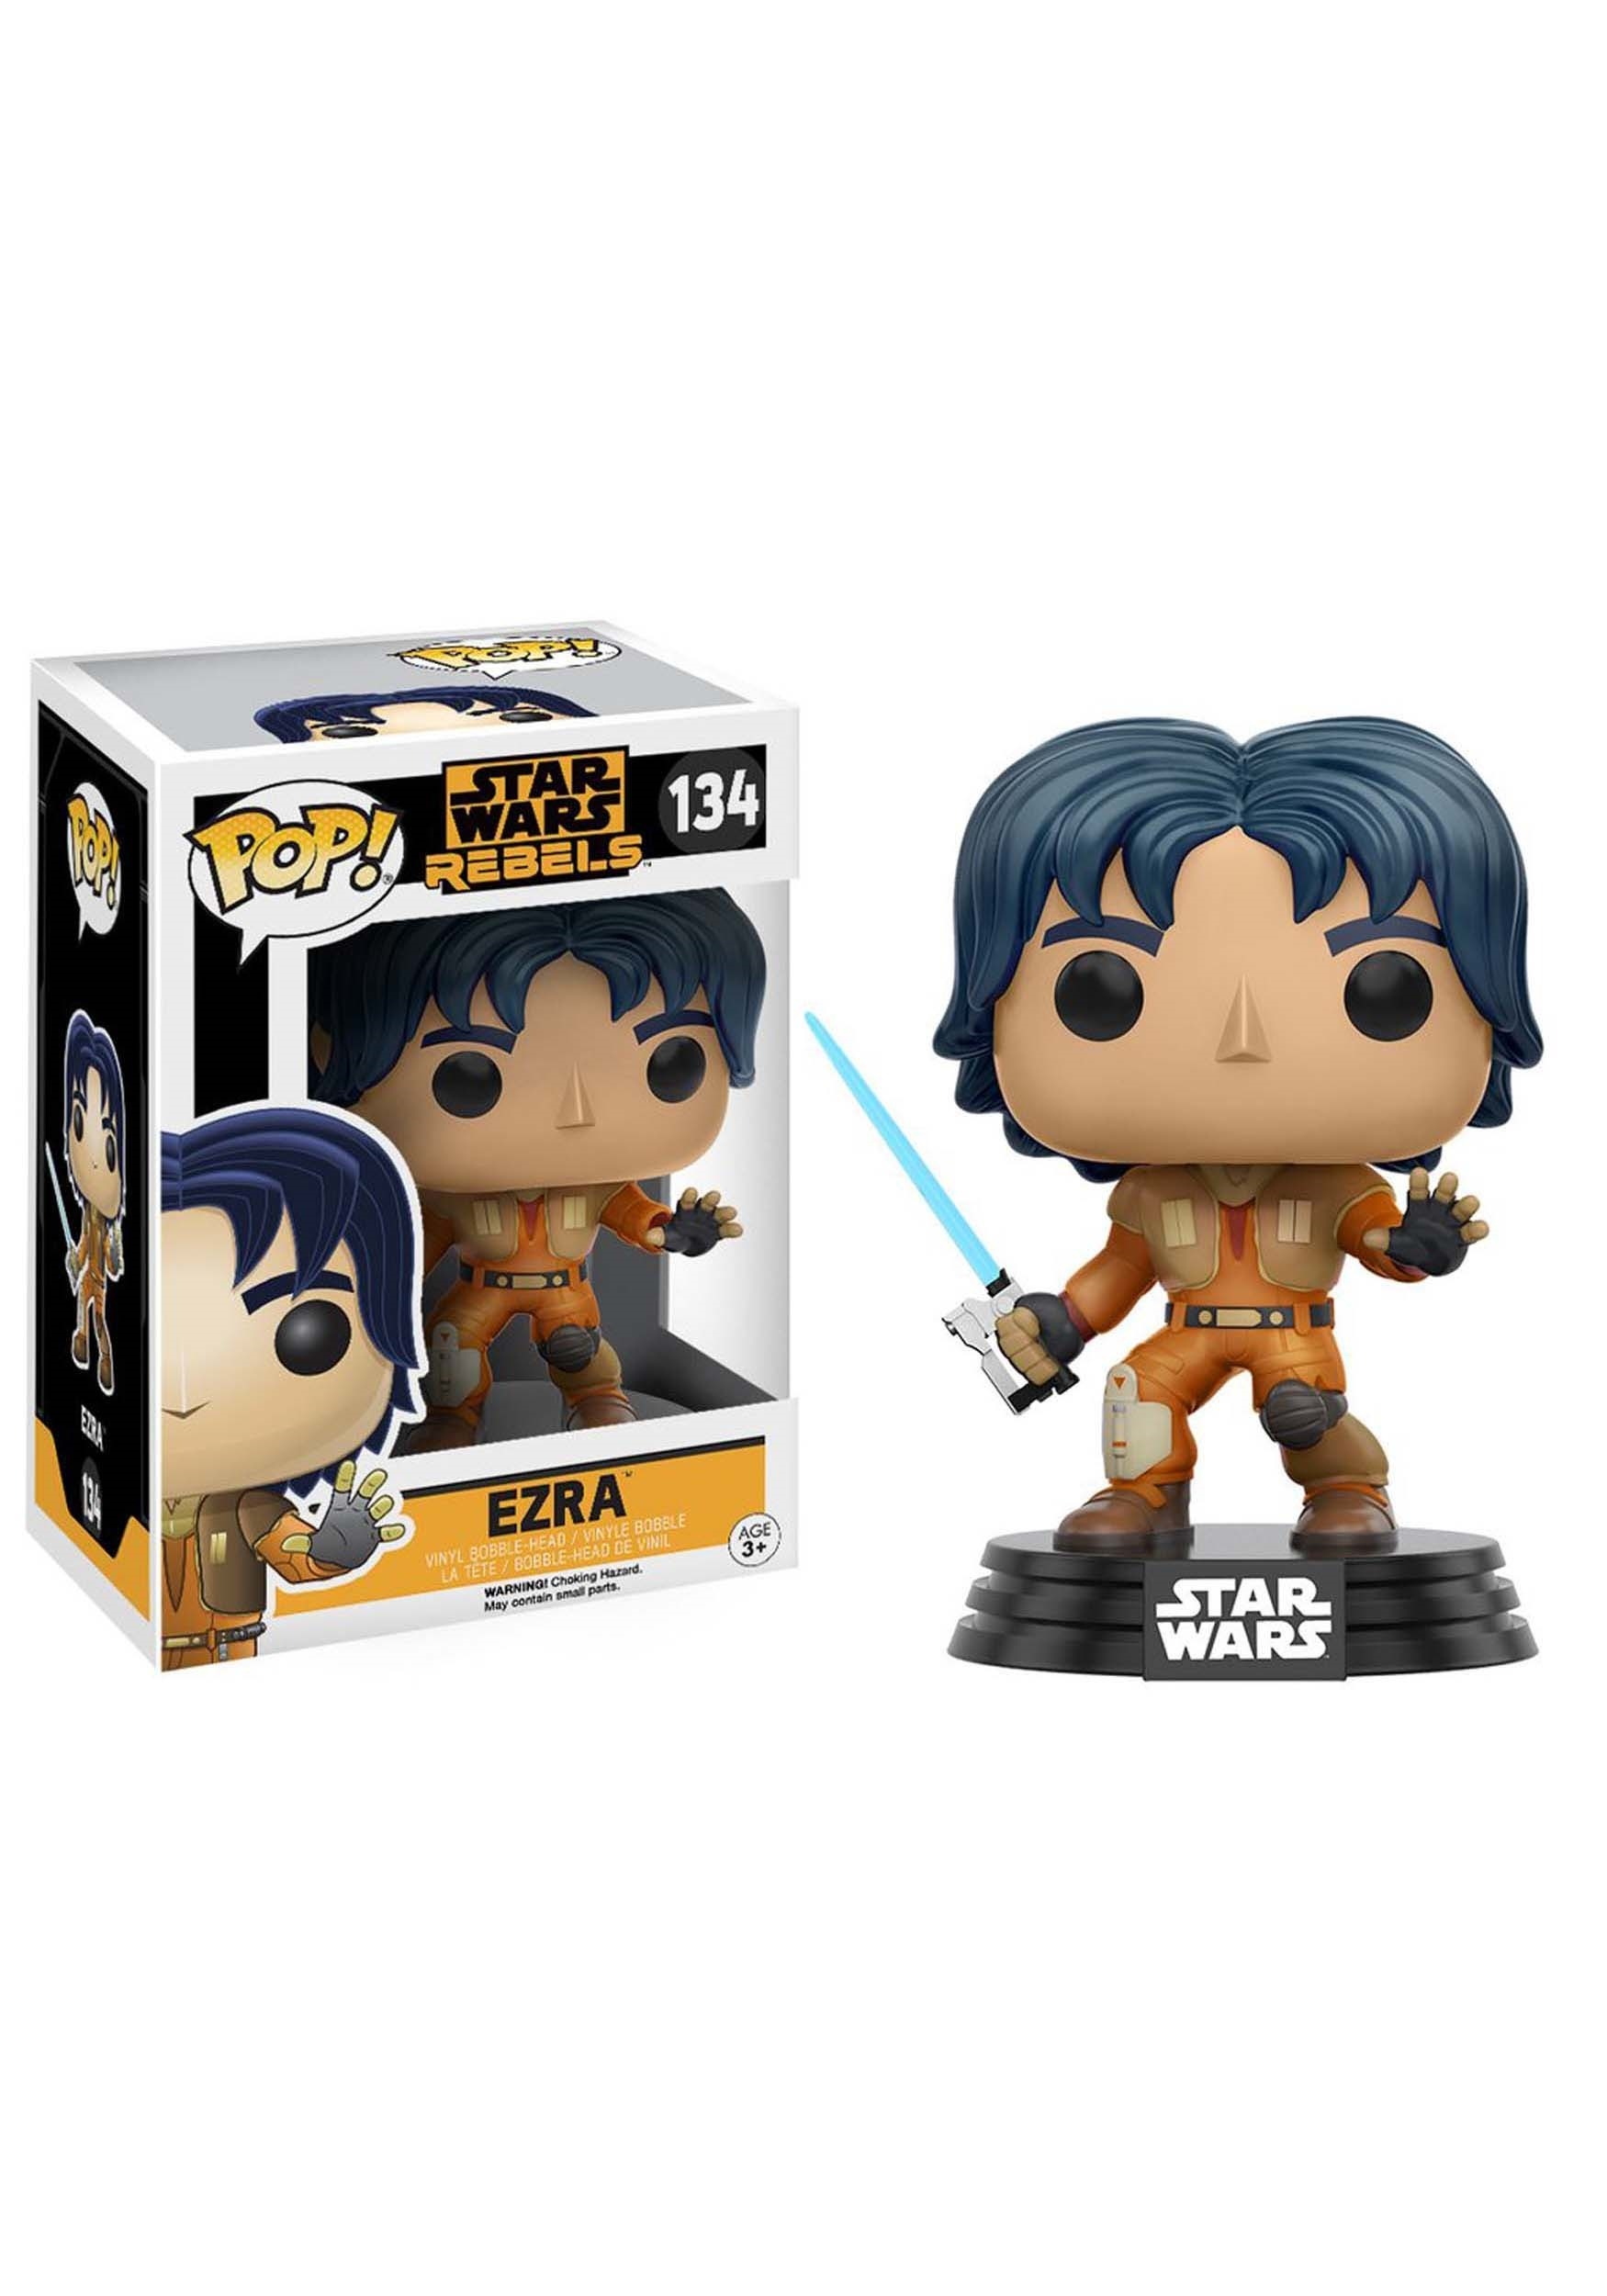 Star Wars Rebels Ezra Bridger Bobblehead POP! Vinyl Figure FN10772